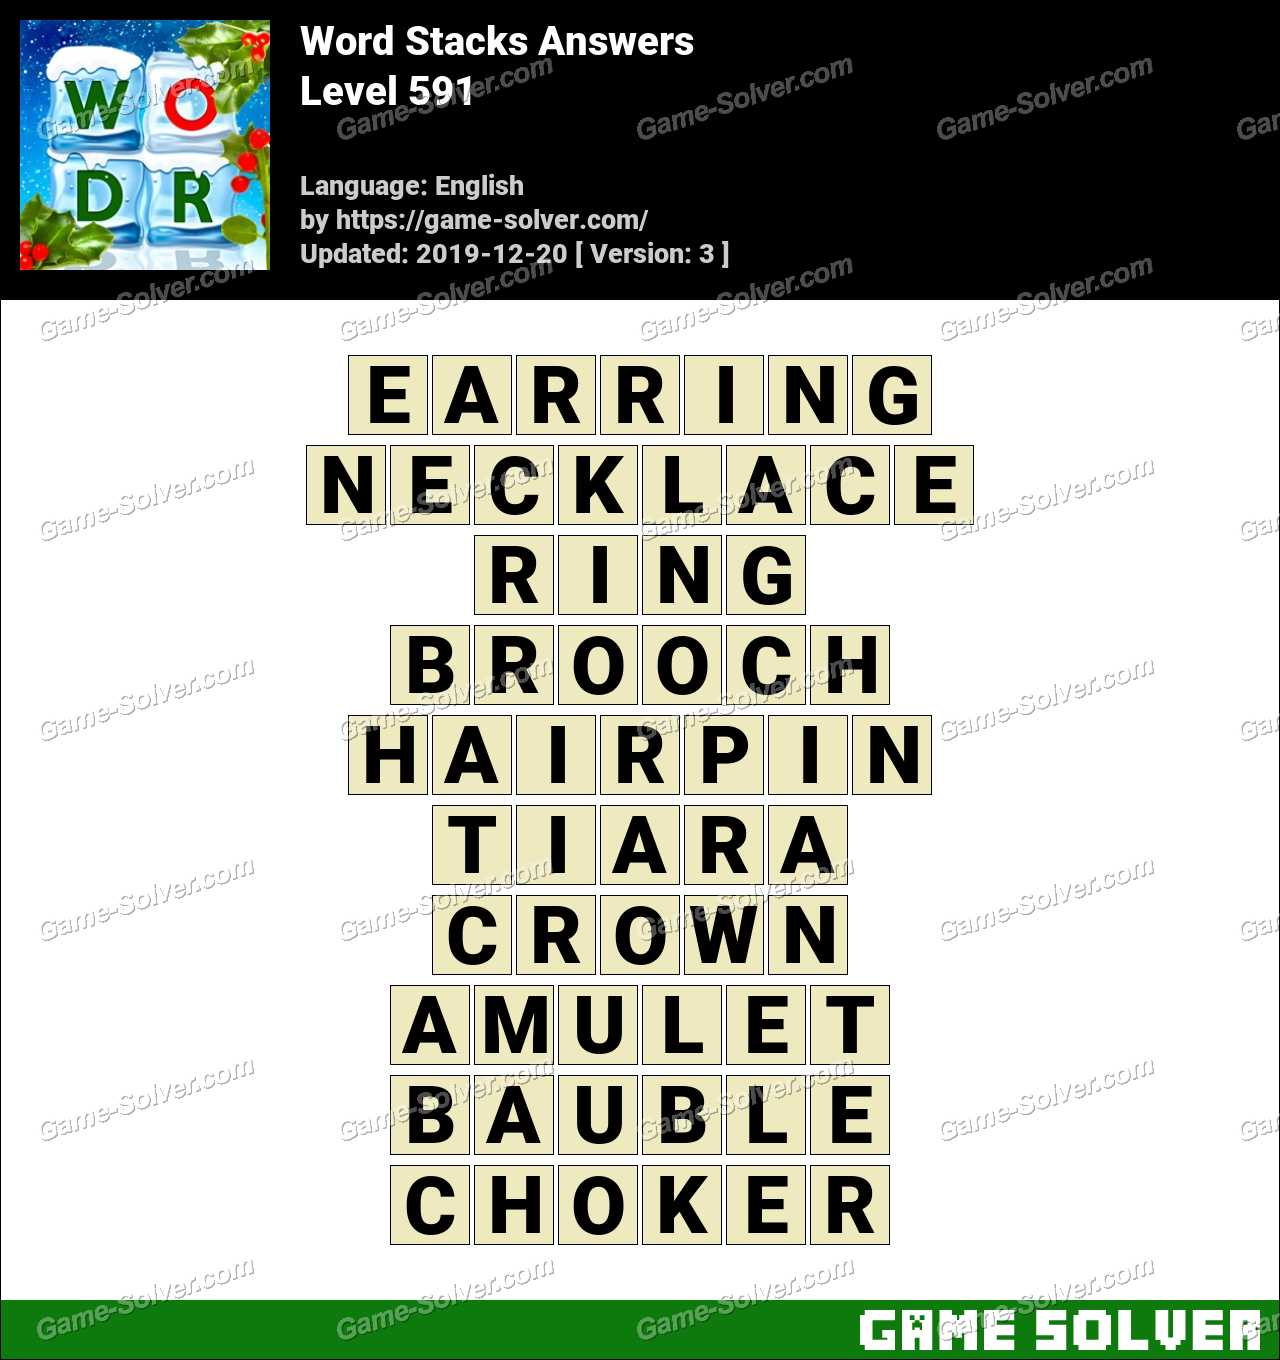 Word Stacks Level 591 Answers